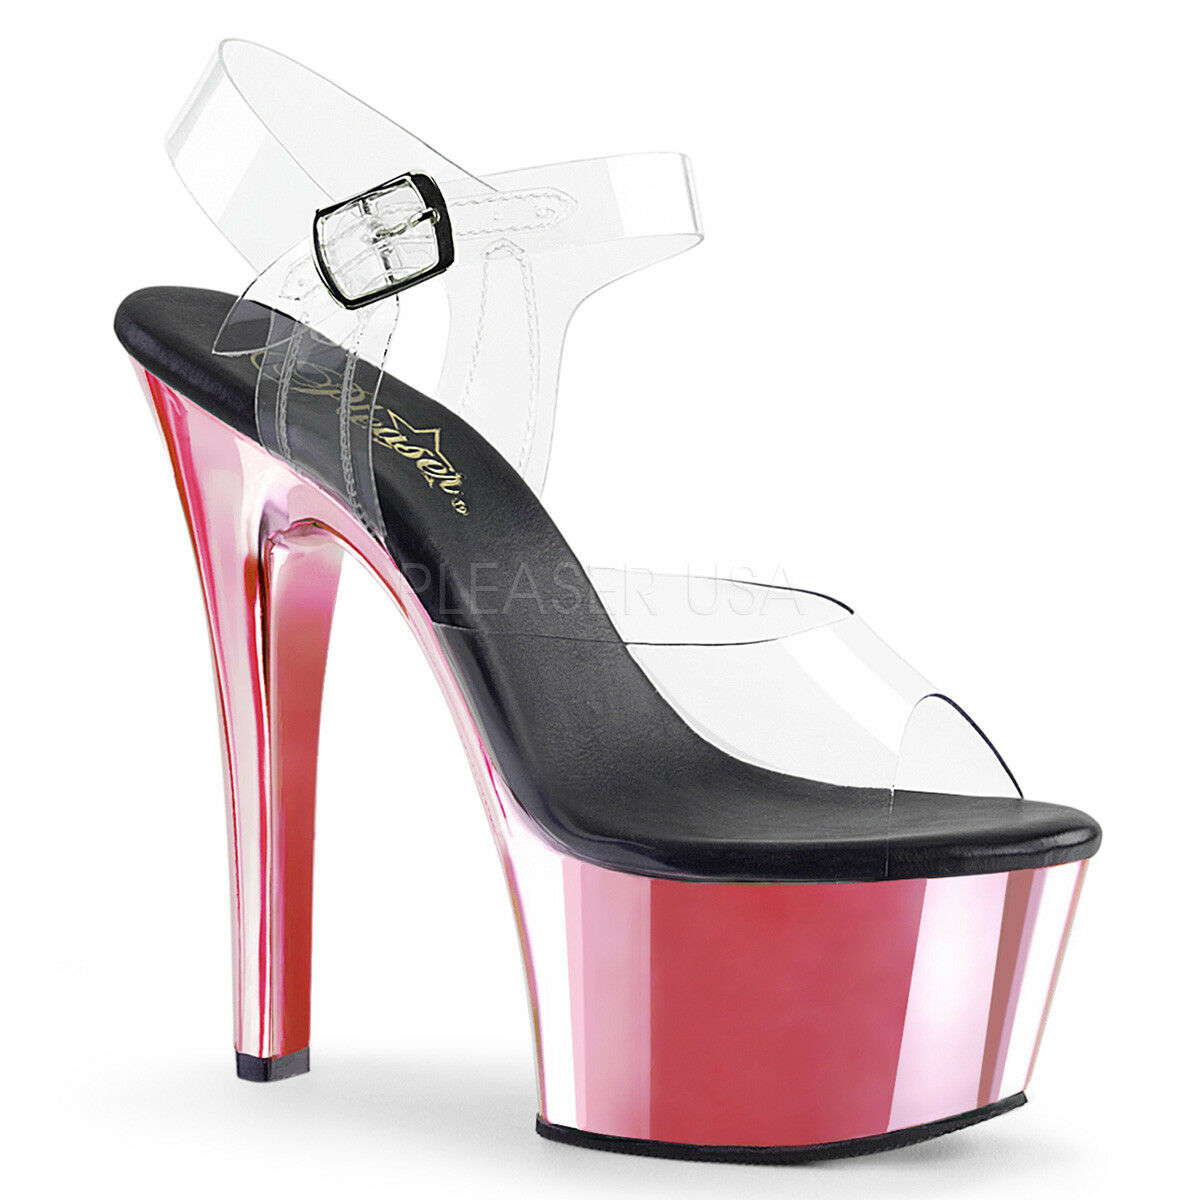 PLEASER ASPIRE HEEL 608 PLATFORM PEEPTOE HIGH HEEL ASPIRE DANCING STILETTO SANDALS SHOES 1685e8